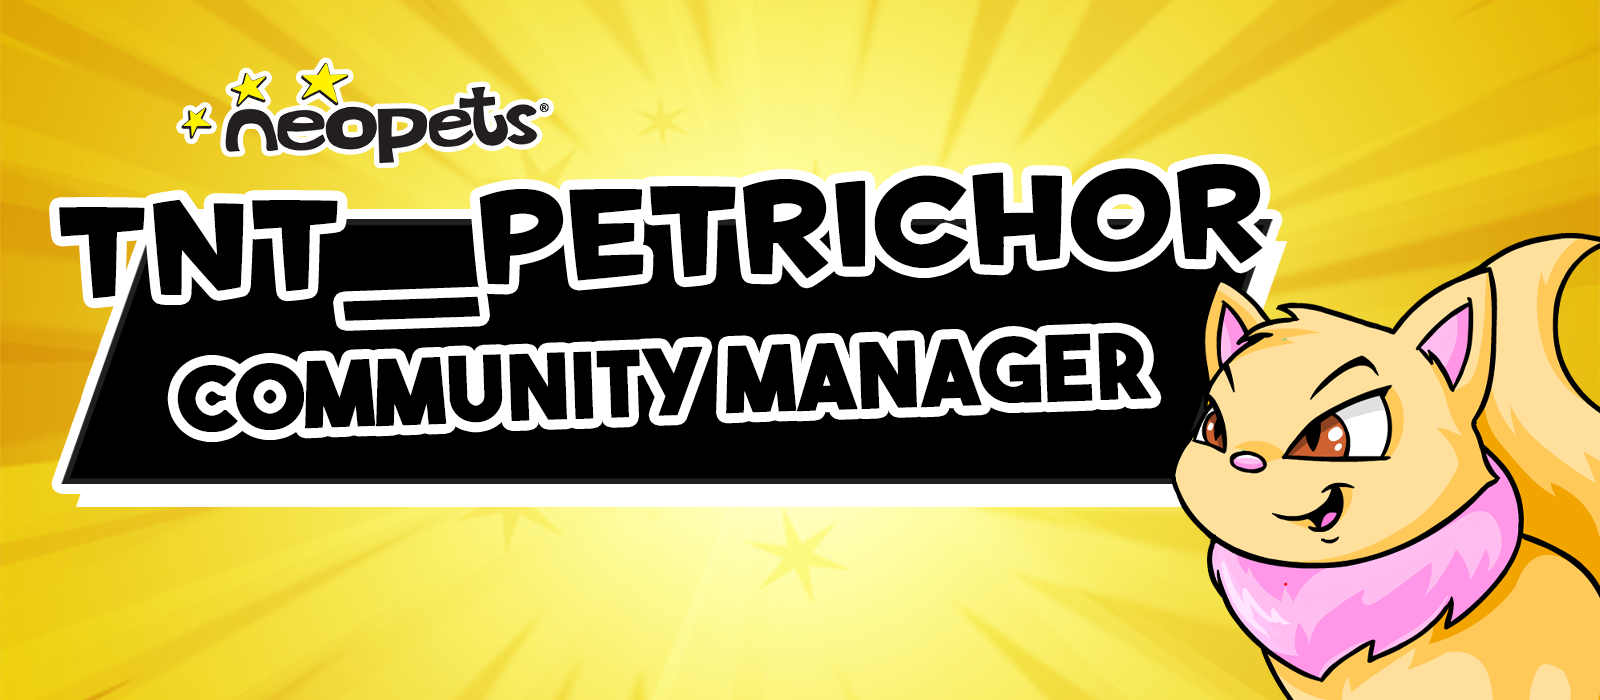 https://images.neopets.com/images/nf/petra_intro.png